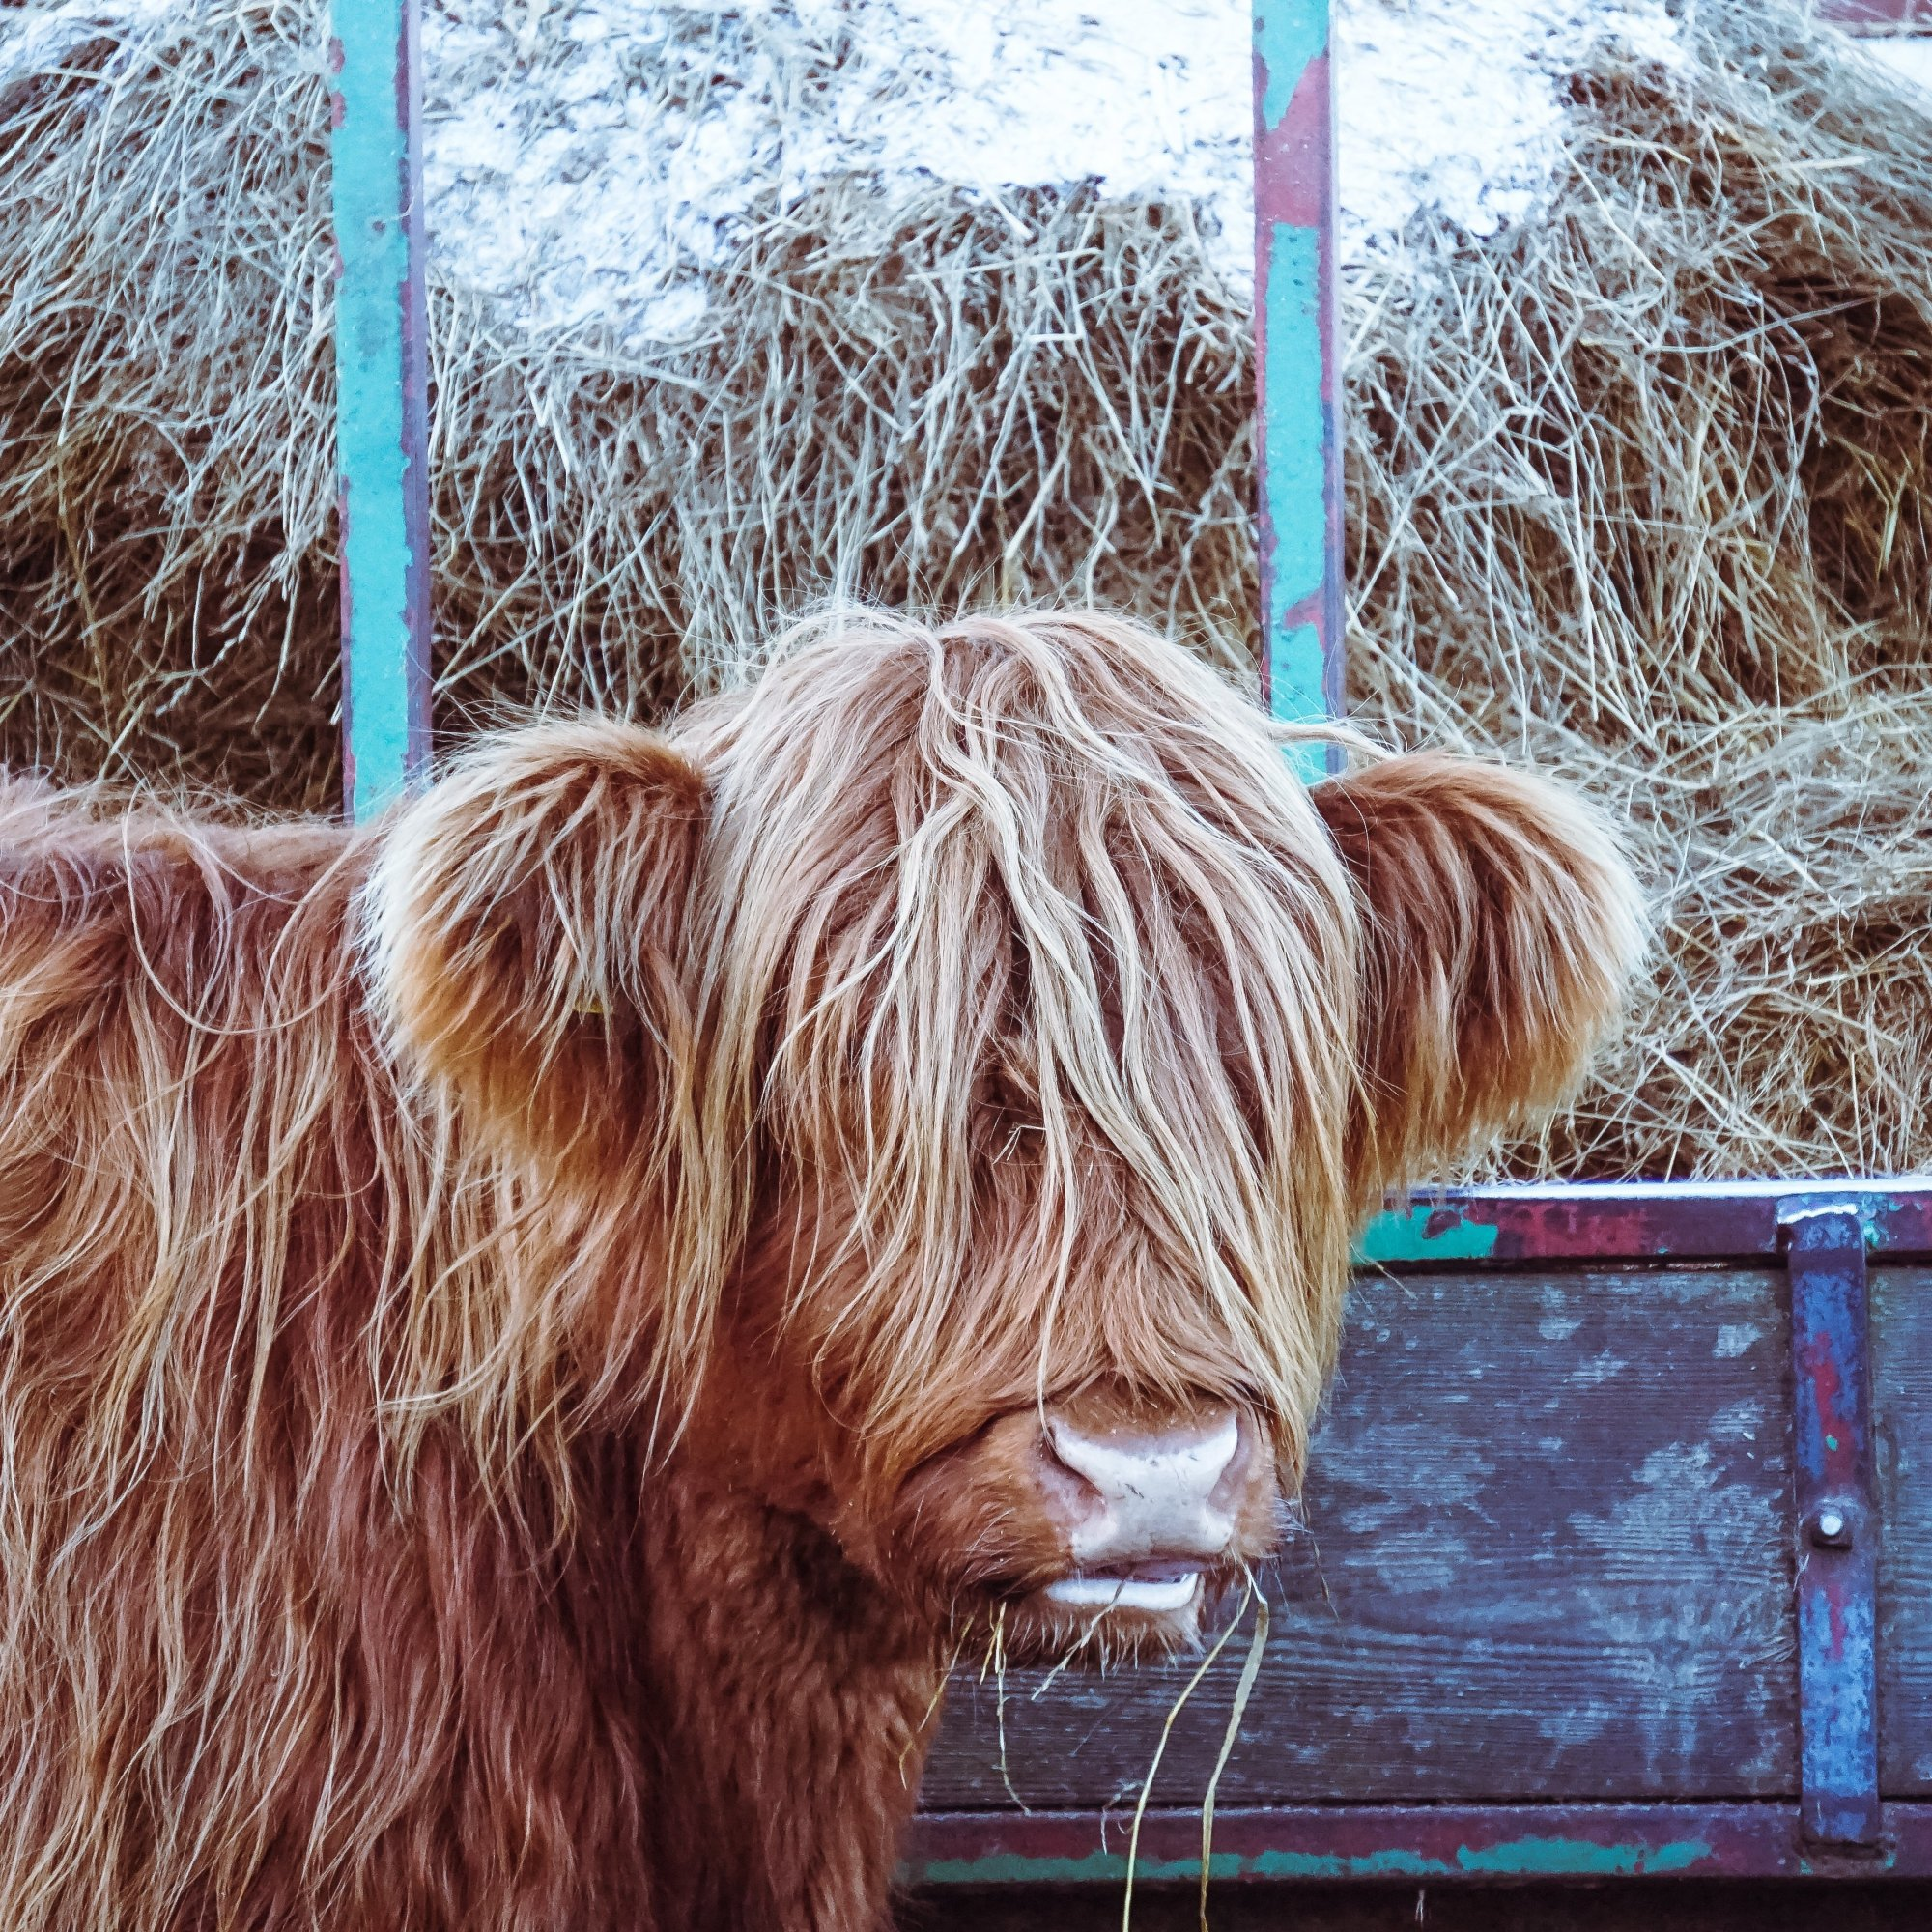 Meet a Highland cow on our private tours of Scotland